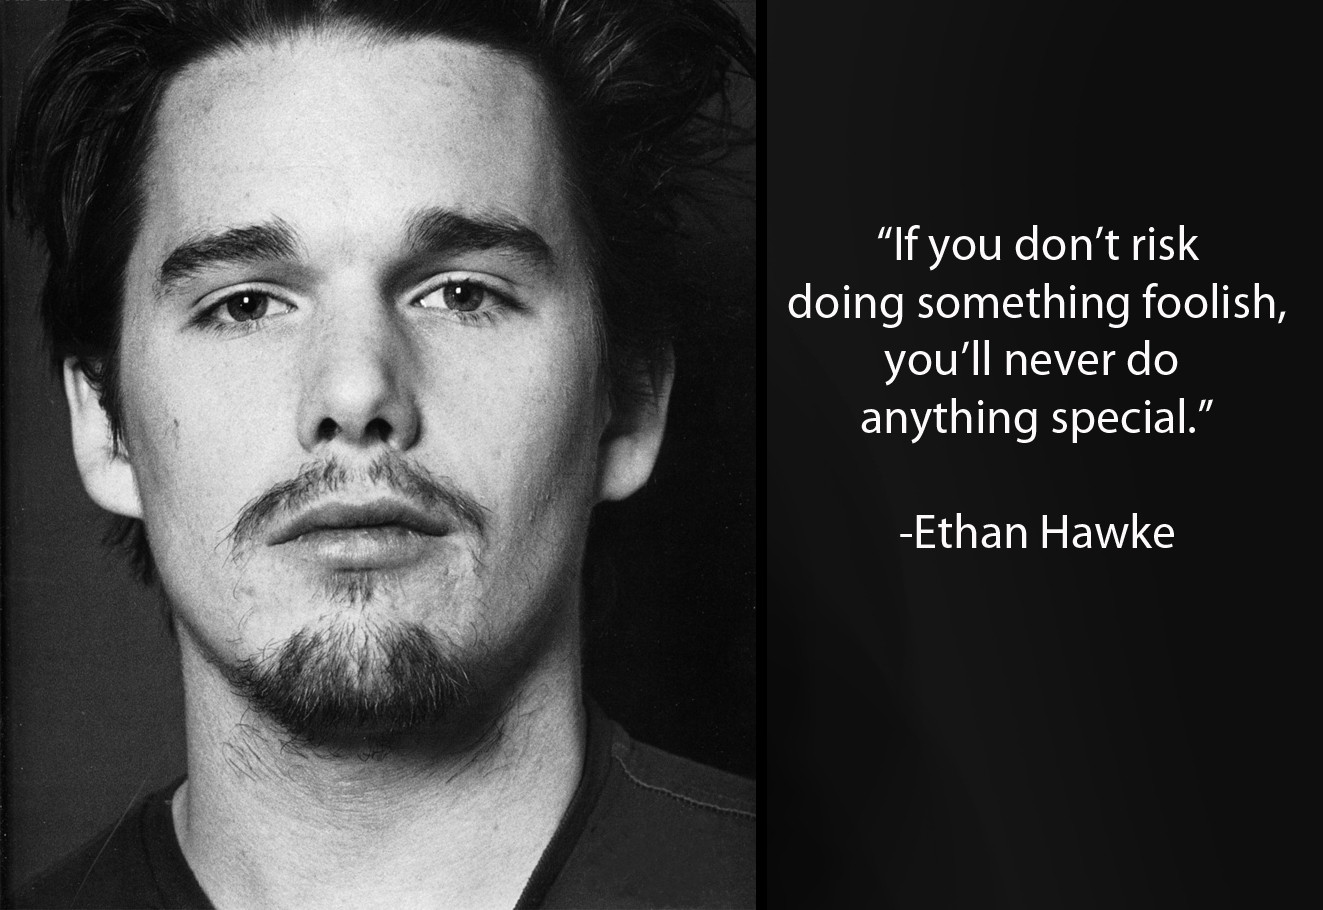 Ethan Hawke's quote #5